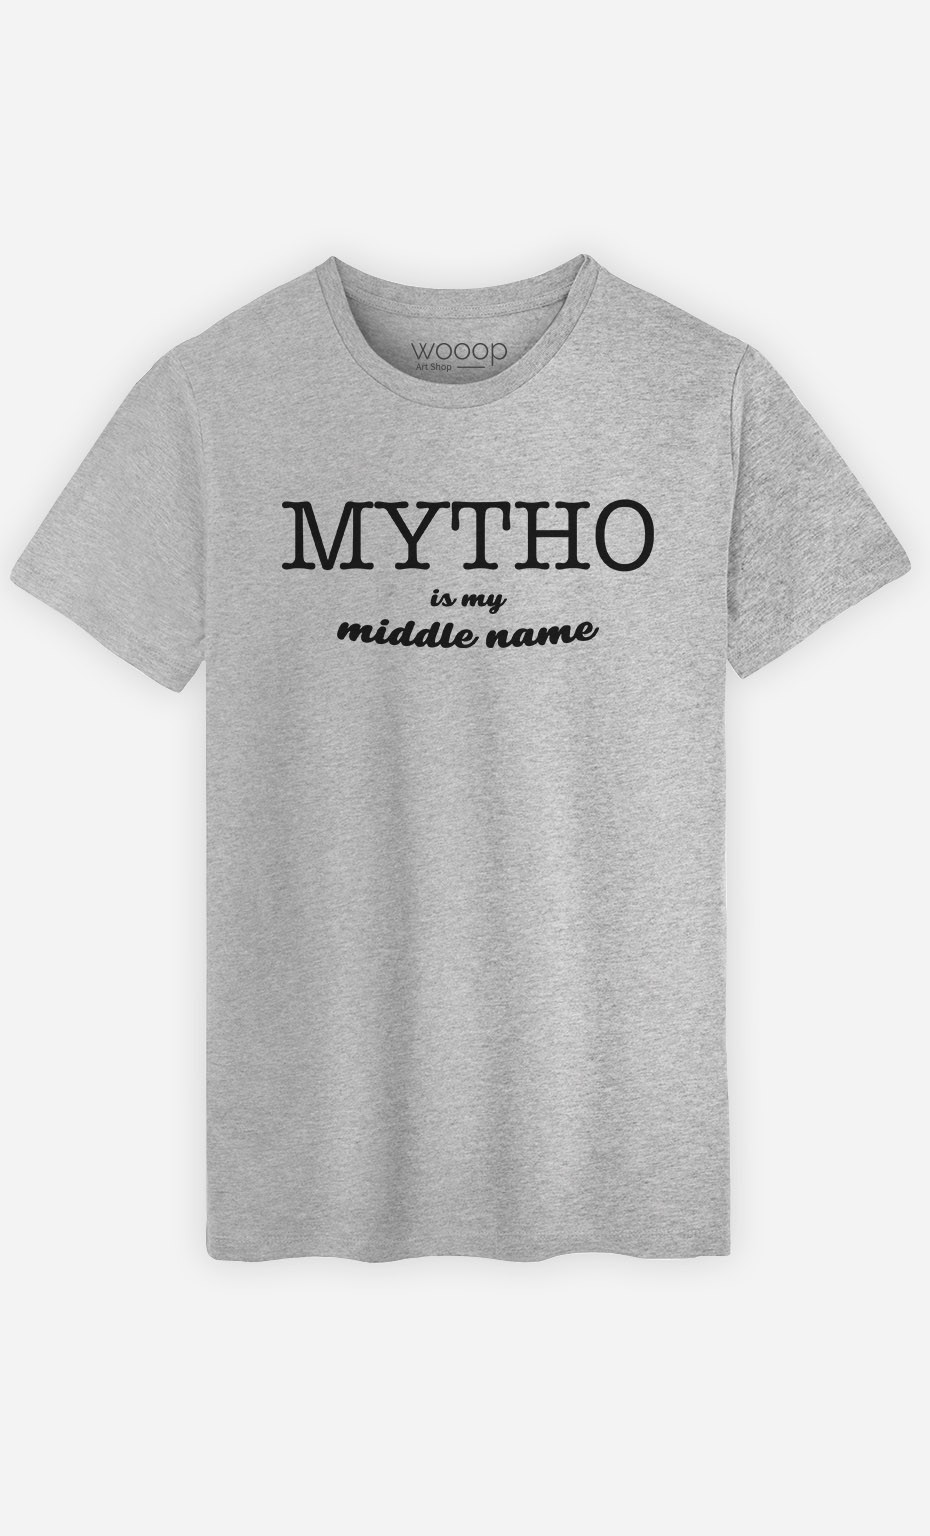 T-Shirt Mytho Is My Middle Name